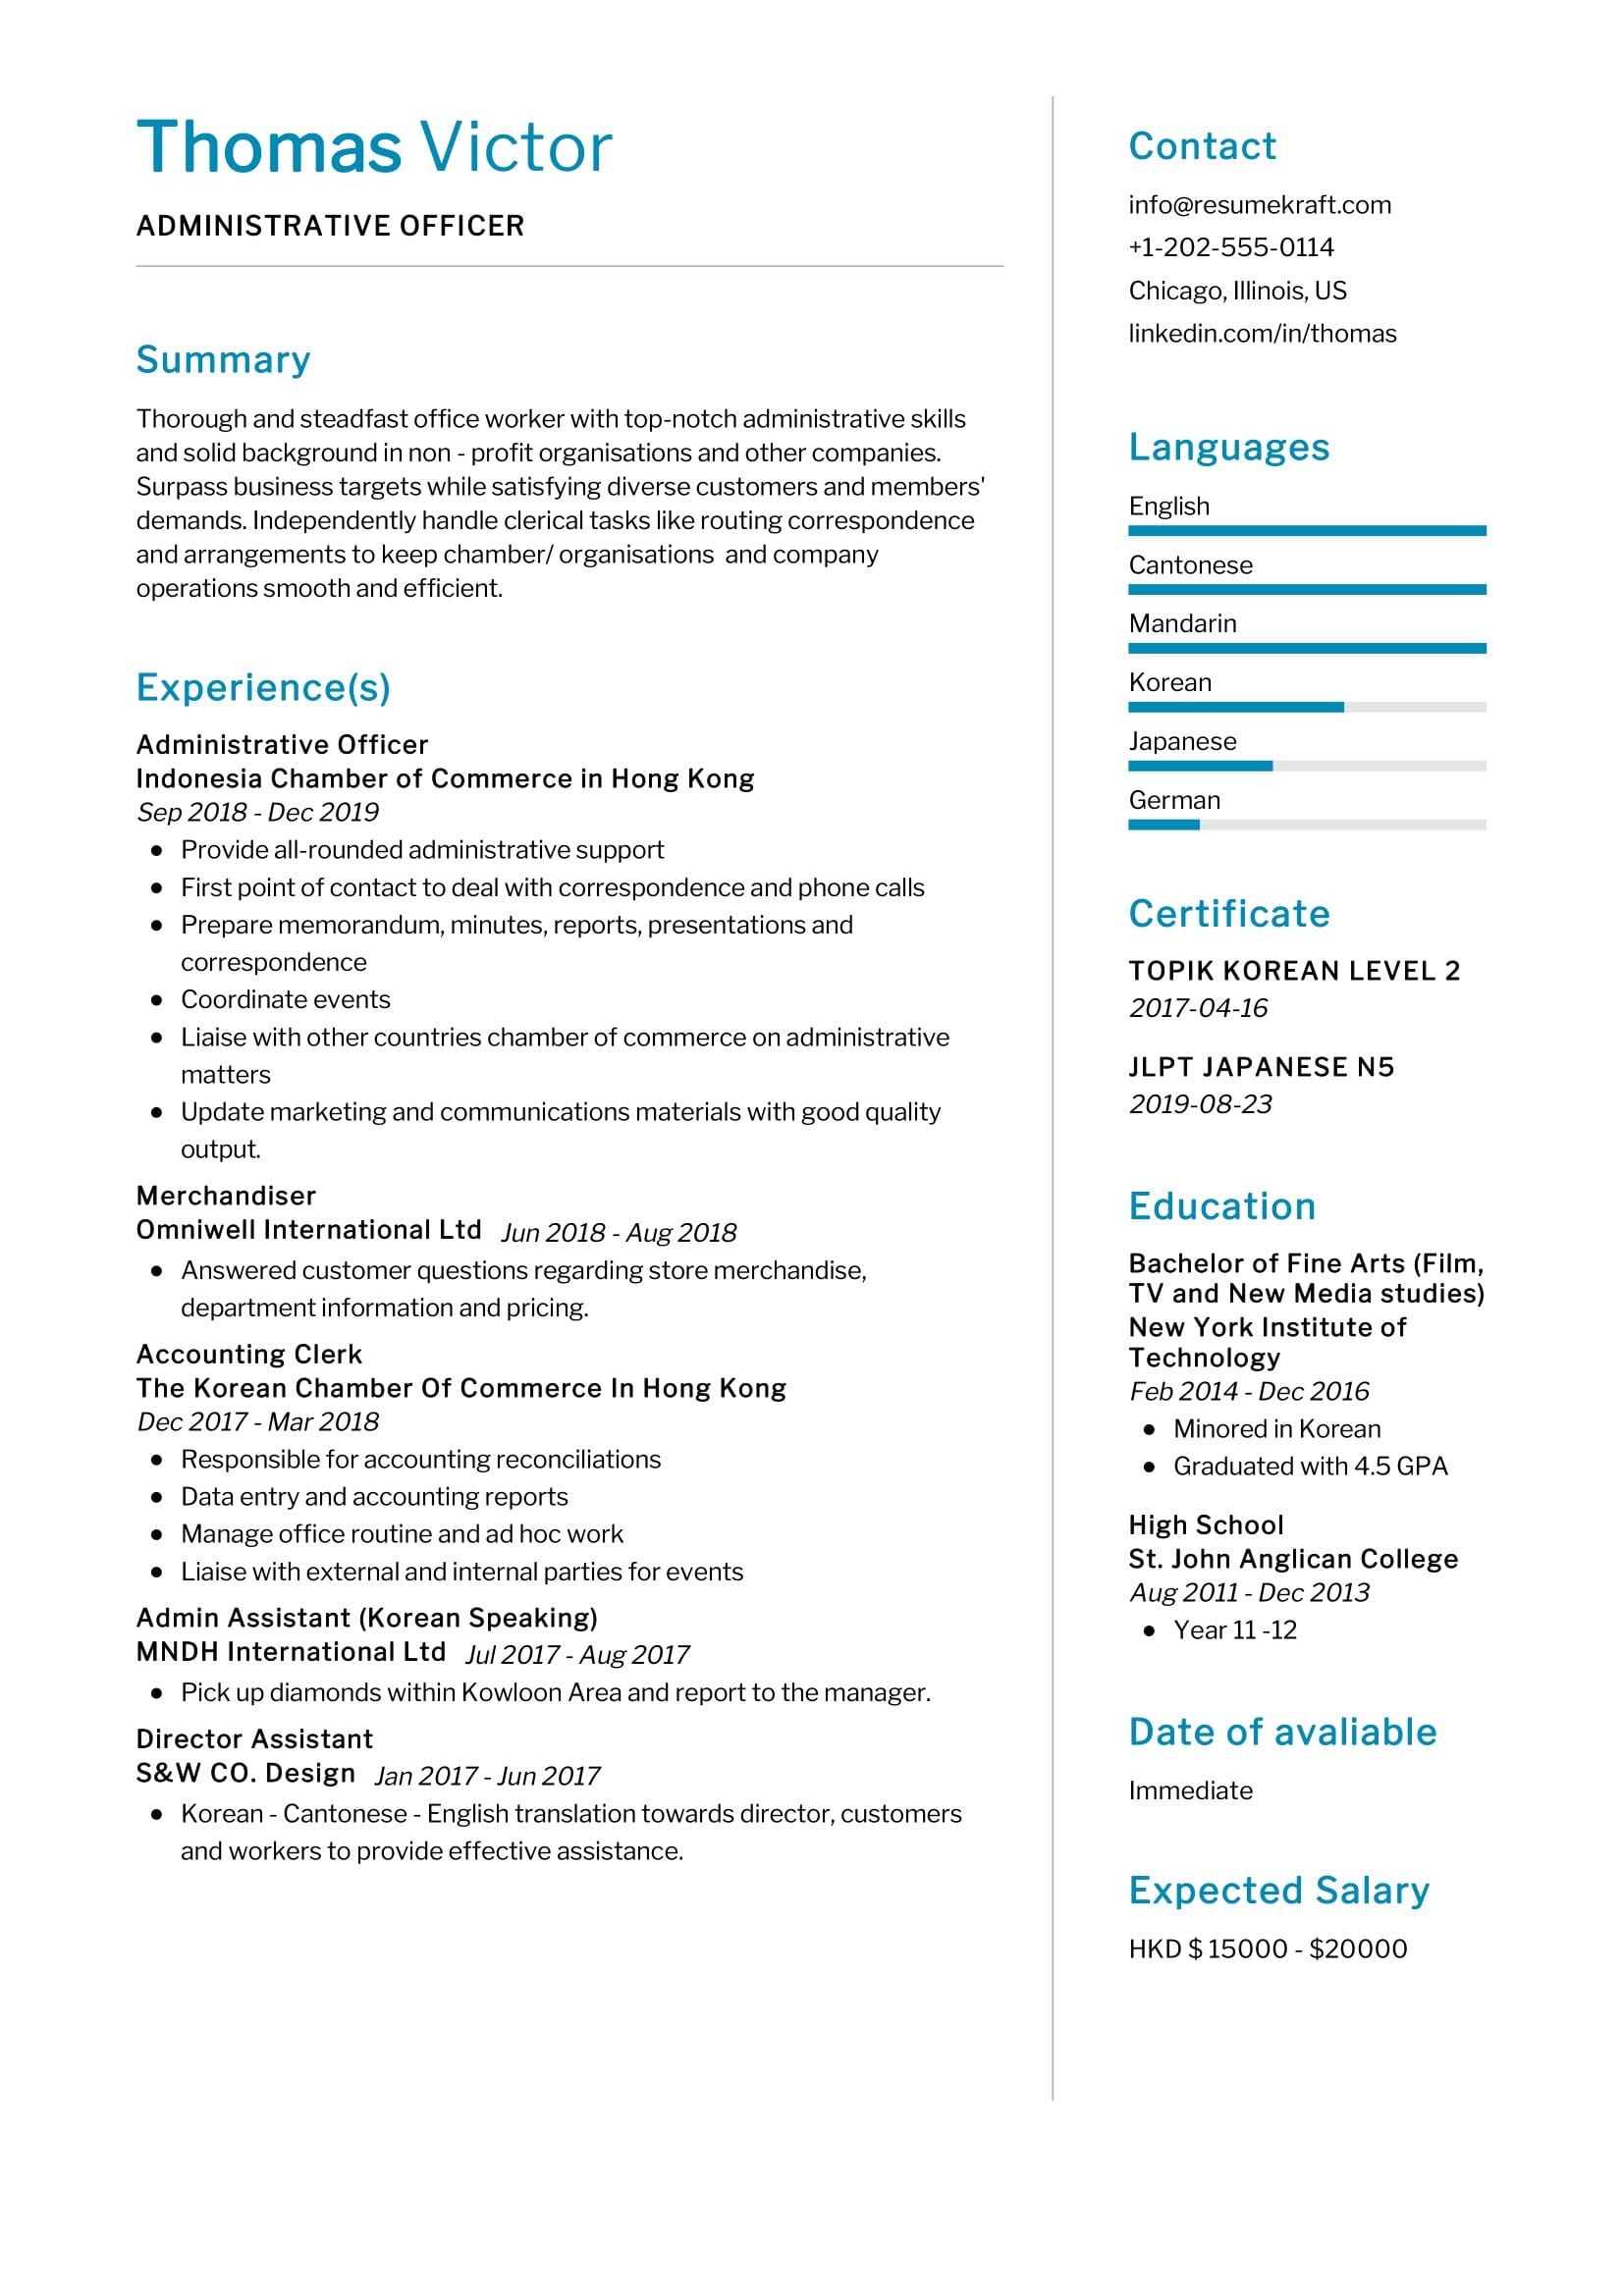 administrative officer resume sample resumekraft format for aws years experience bms Resume Resume Format For Administrative Officer